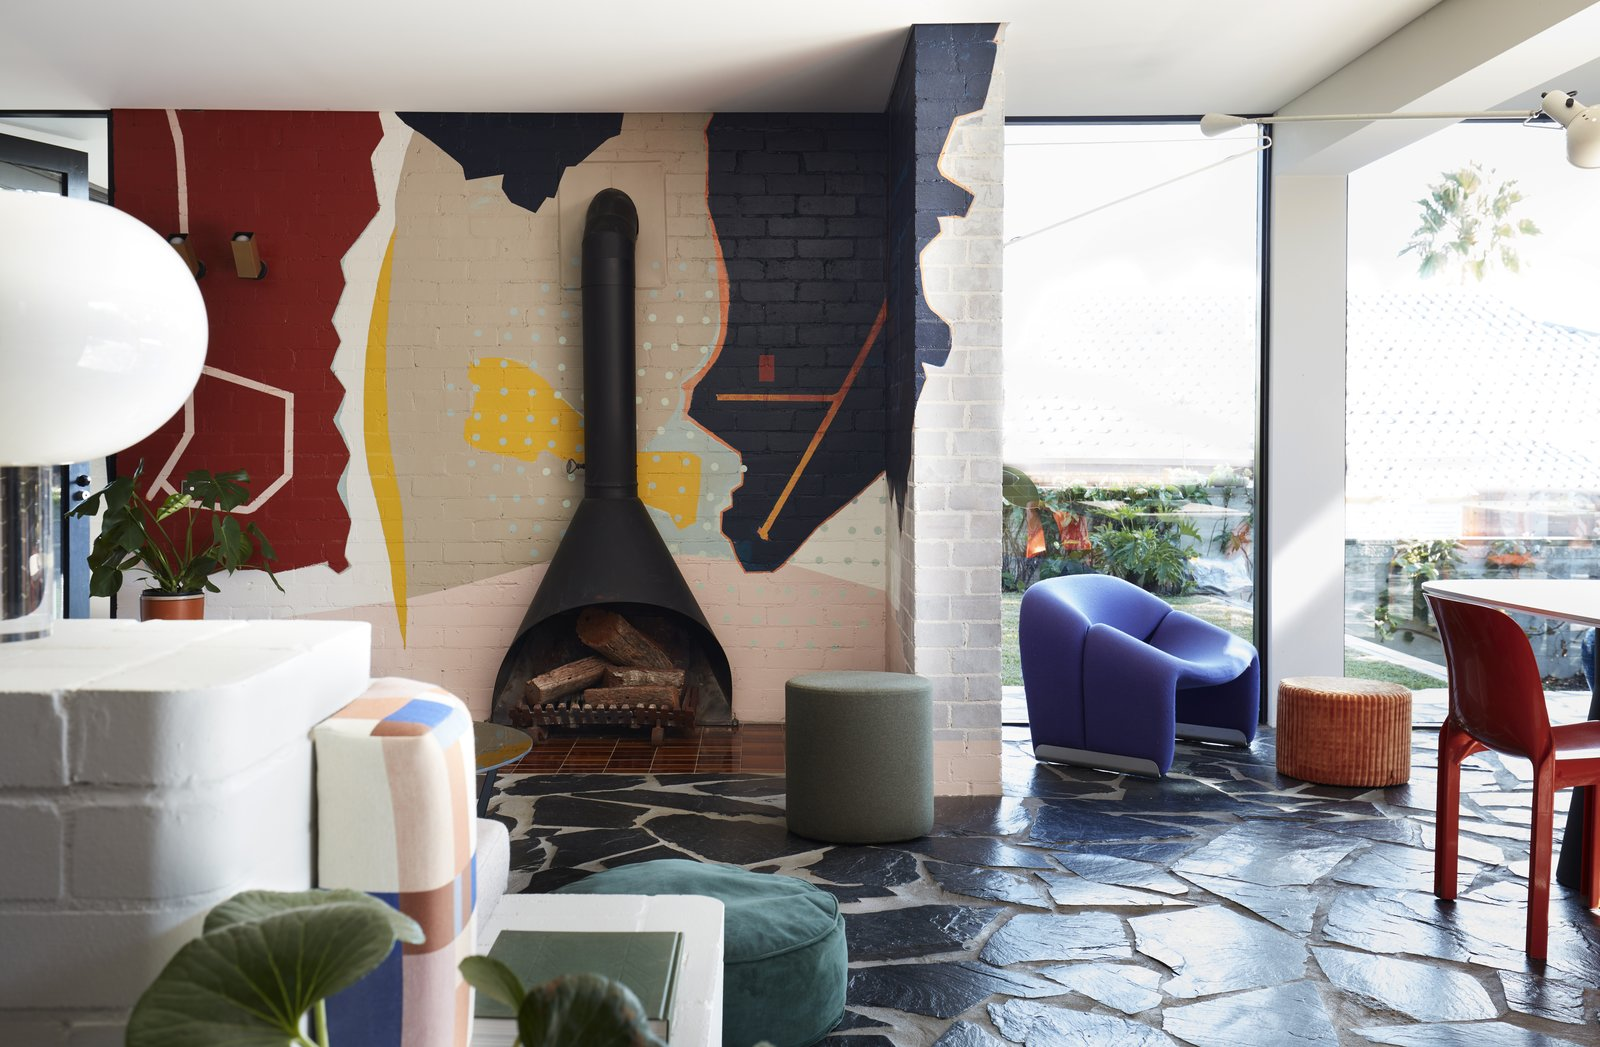 Before & After: An Australian Midcentury Home Is Awash With Bold Color and Pattern